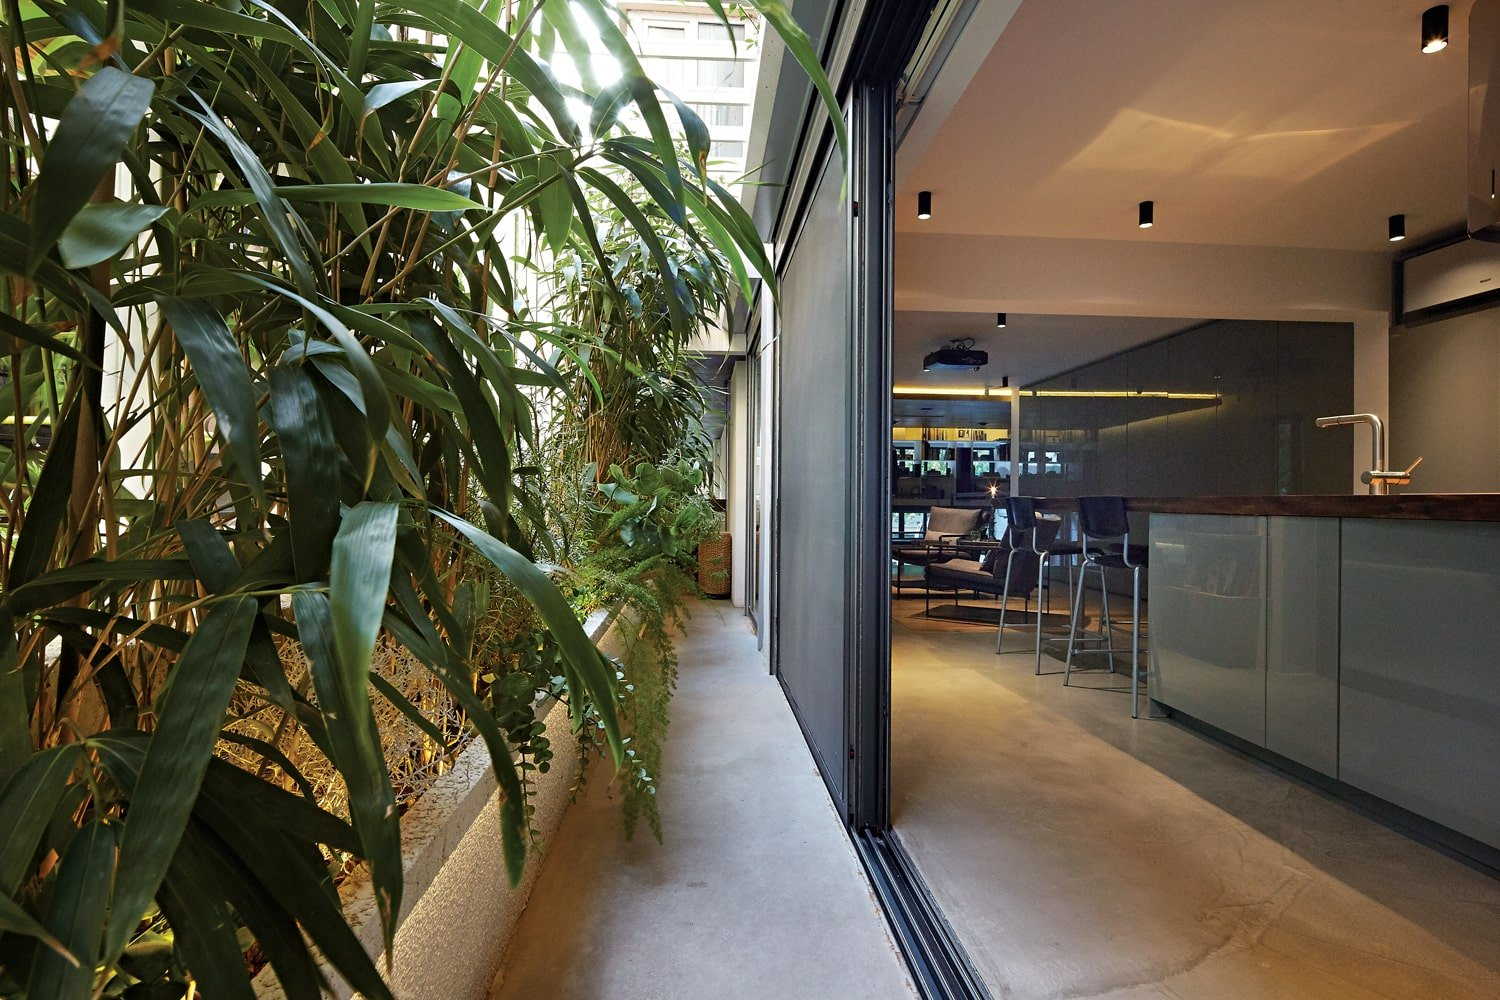 The large glass wall of the kitchen can open up to a long and narrow outdoor area with a miniature garden dominating the wall.